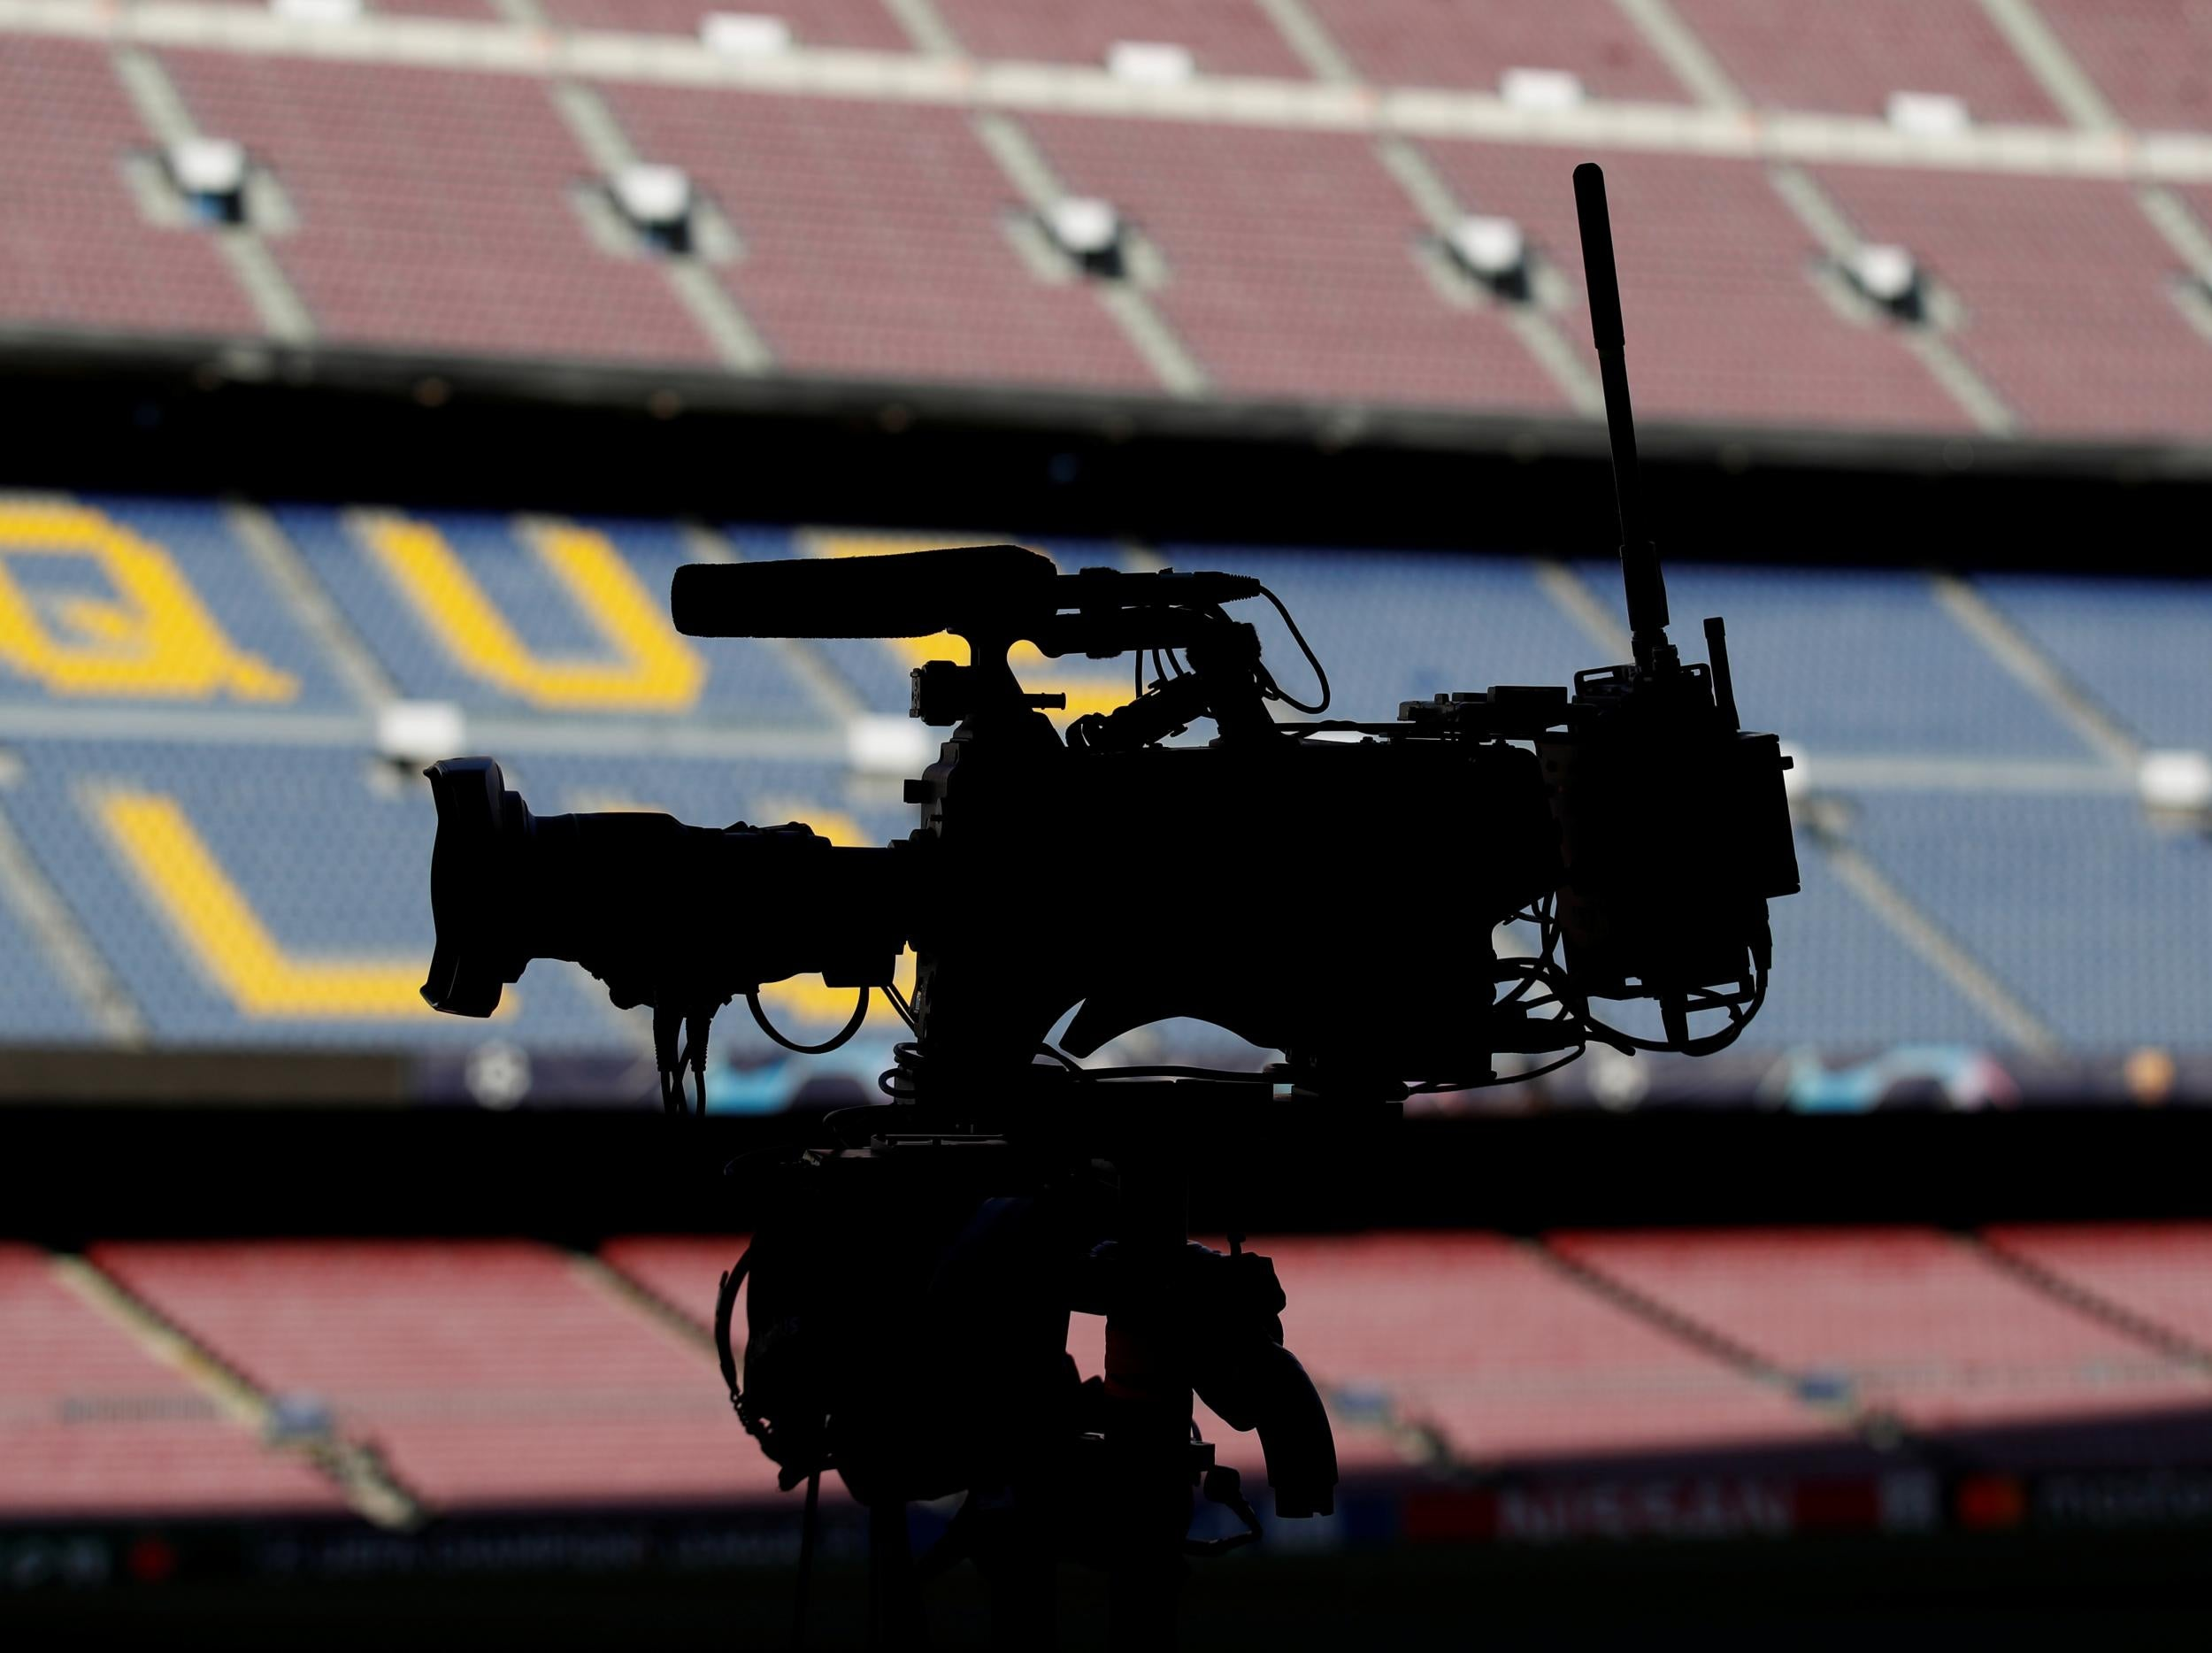 inter milan vs barcelona - photo #11